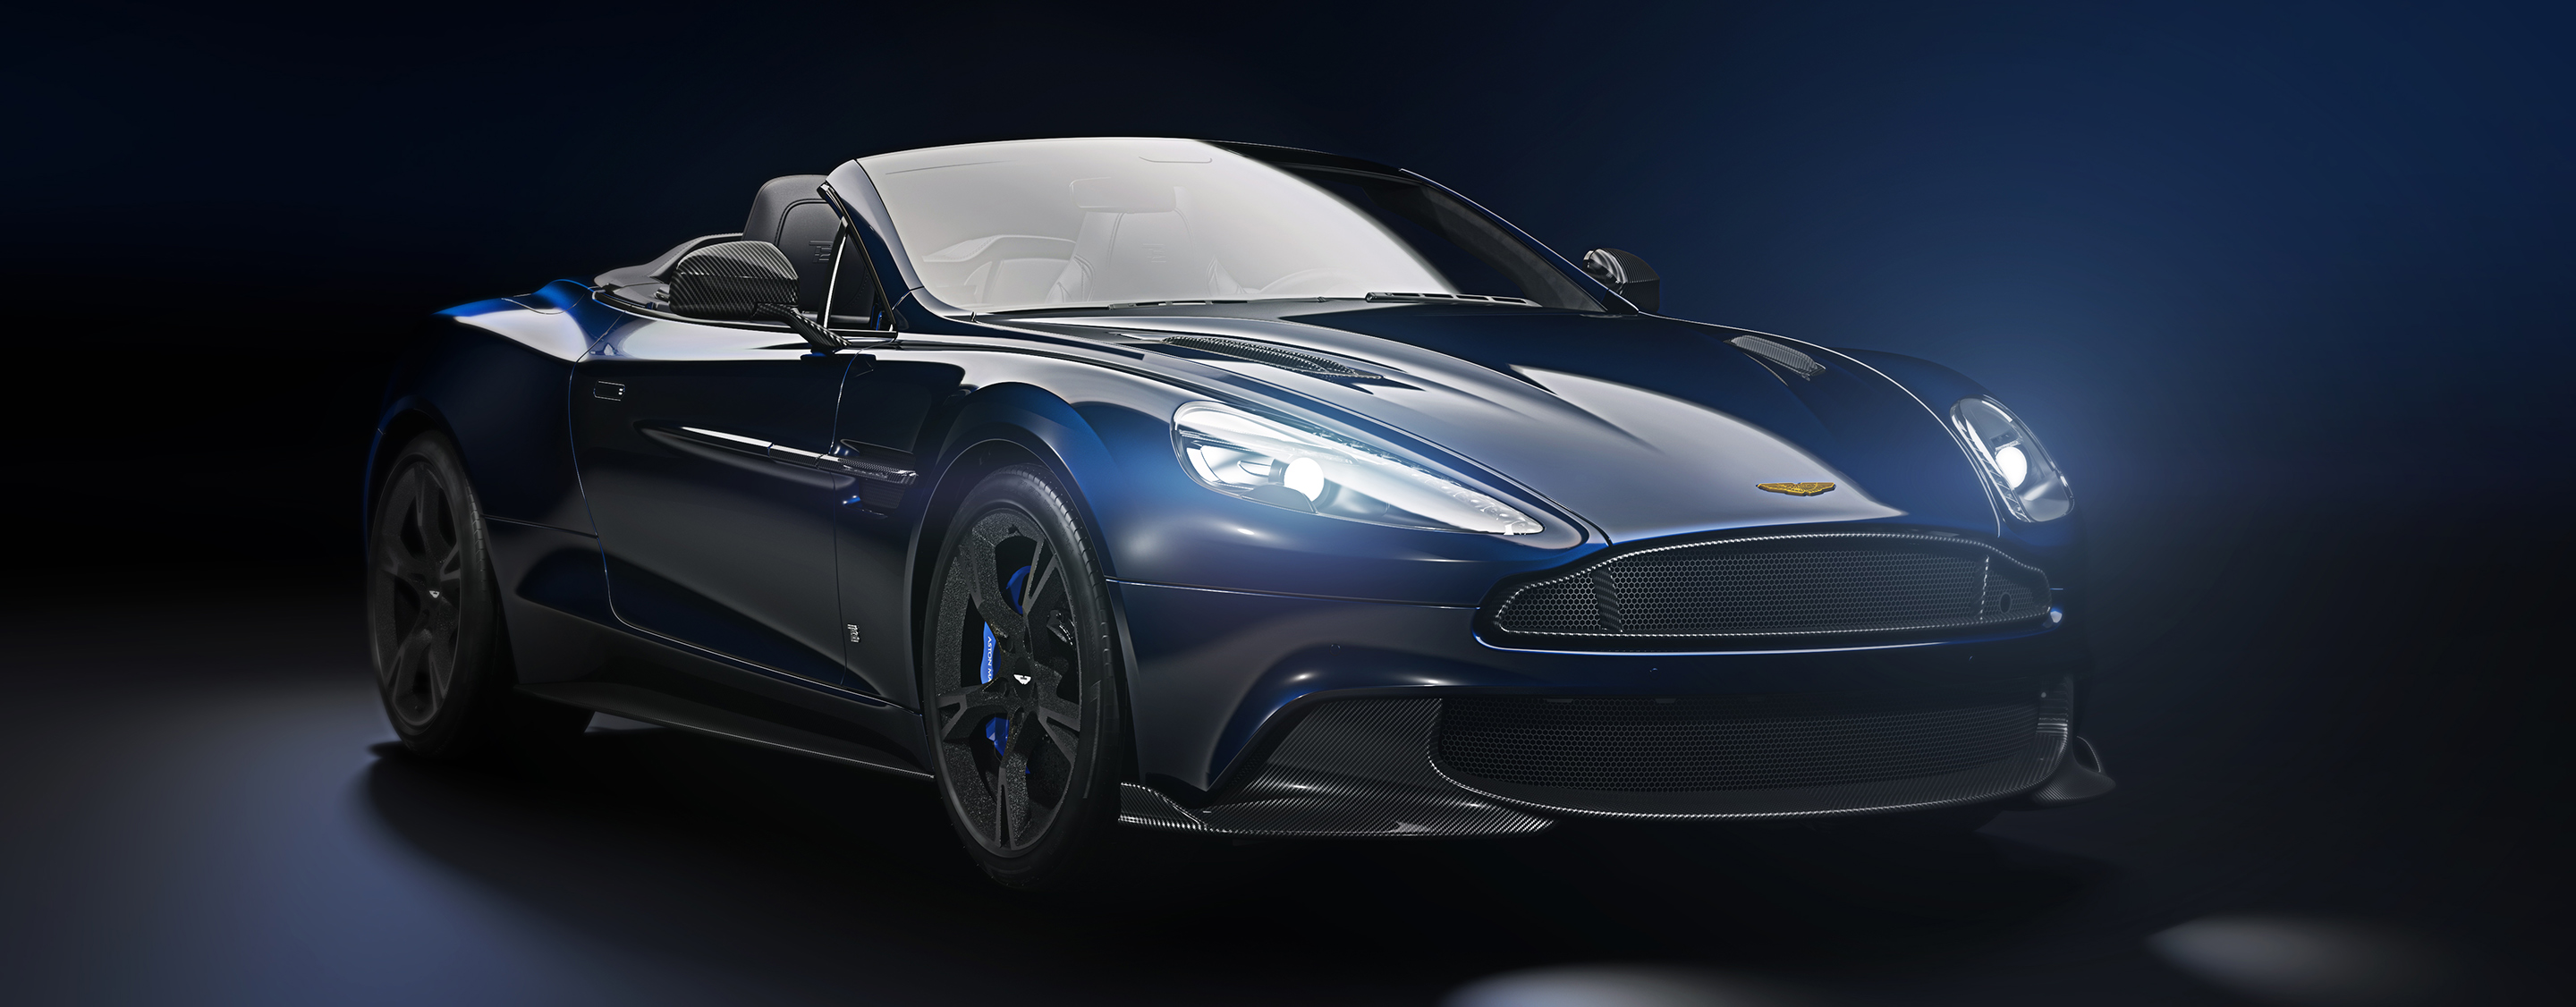 TrackWorthy - Aston Martin Vanquish S Tom Brady Signature Edition (1)